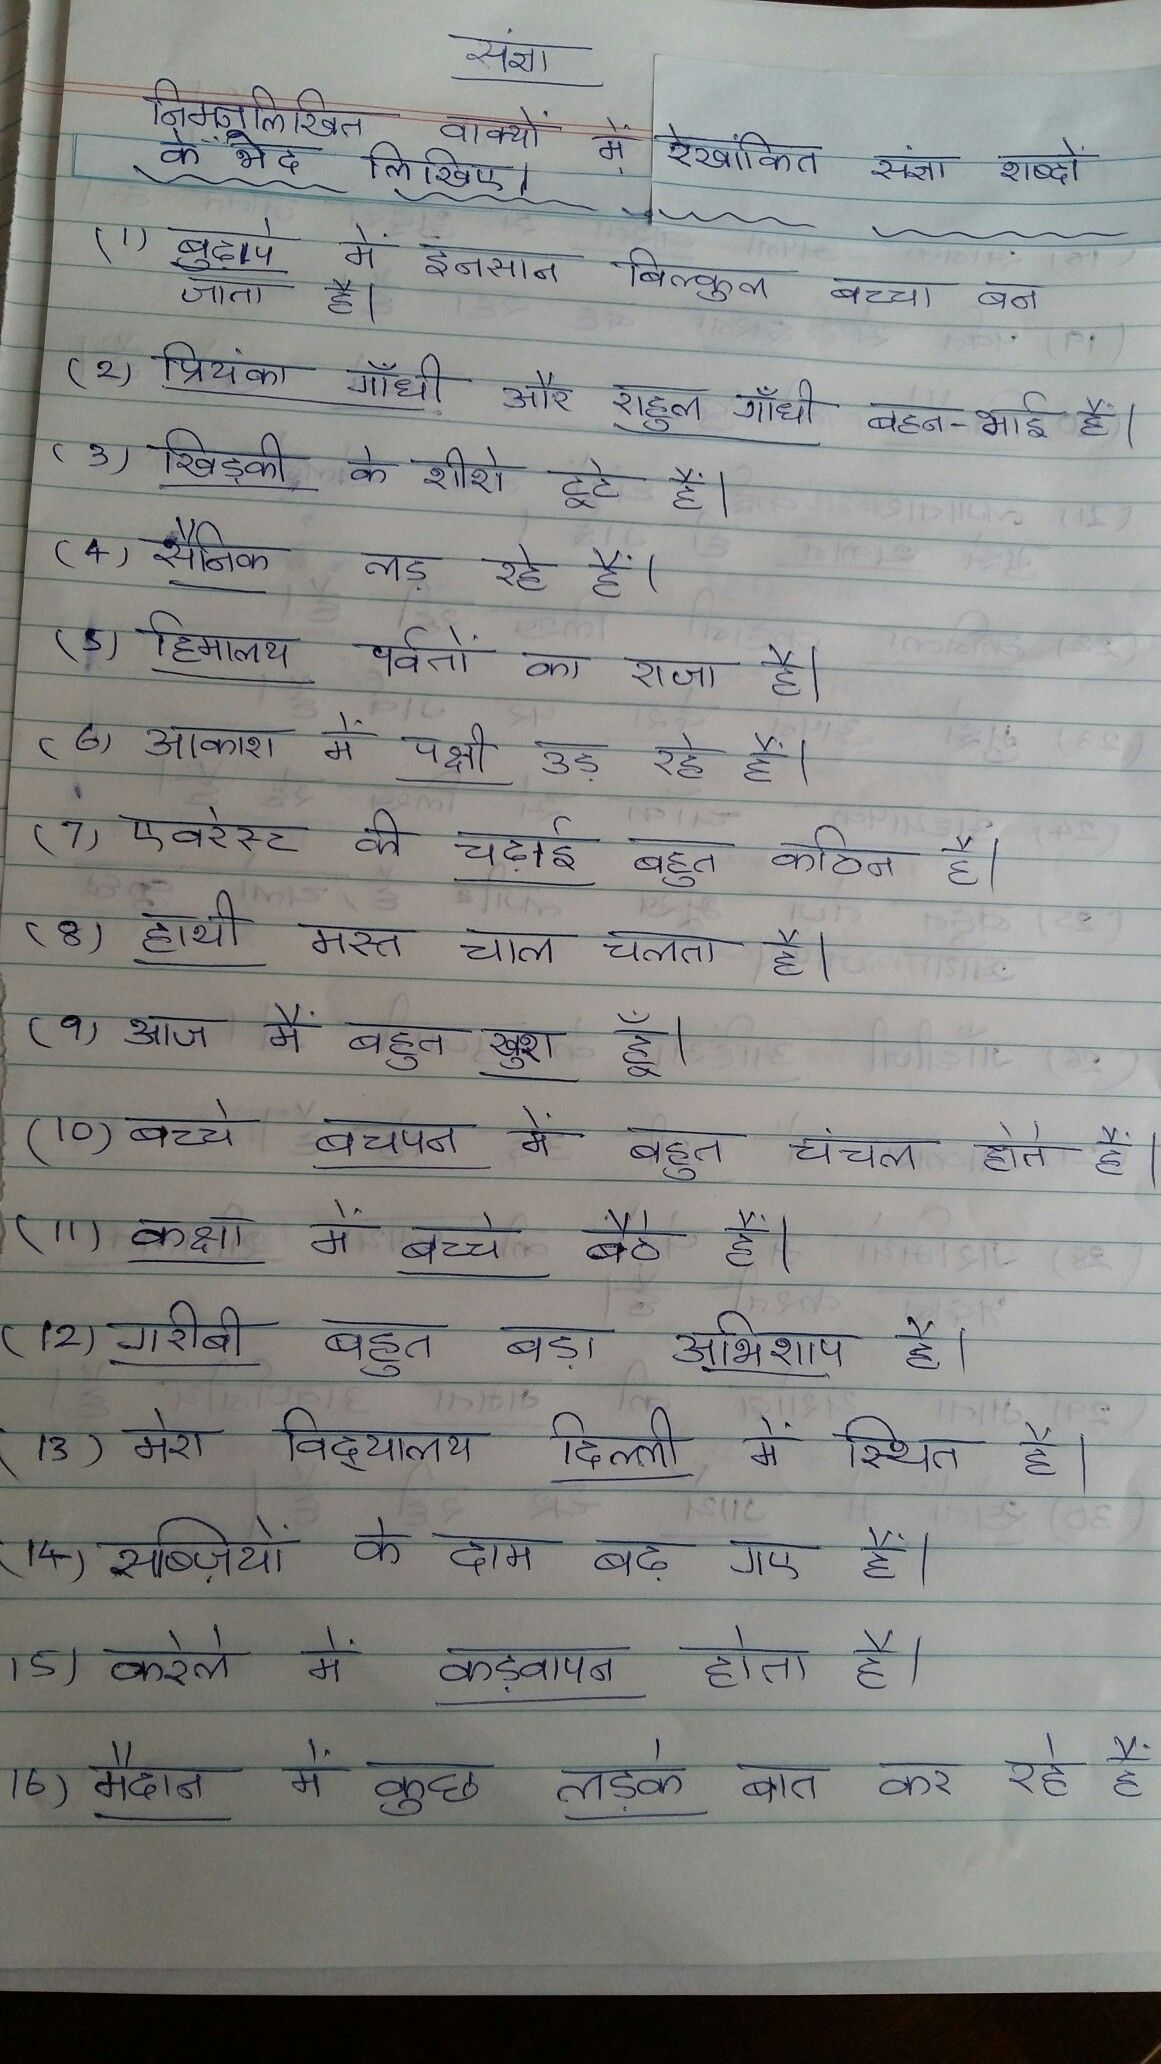 6 Hindi Grammar Worksheets for Class 1 in 2020 Grammar